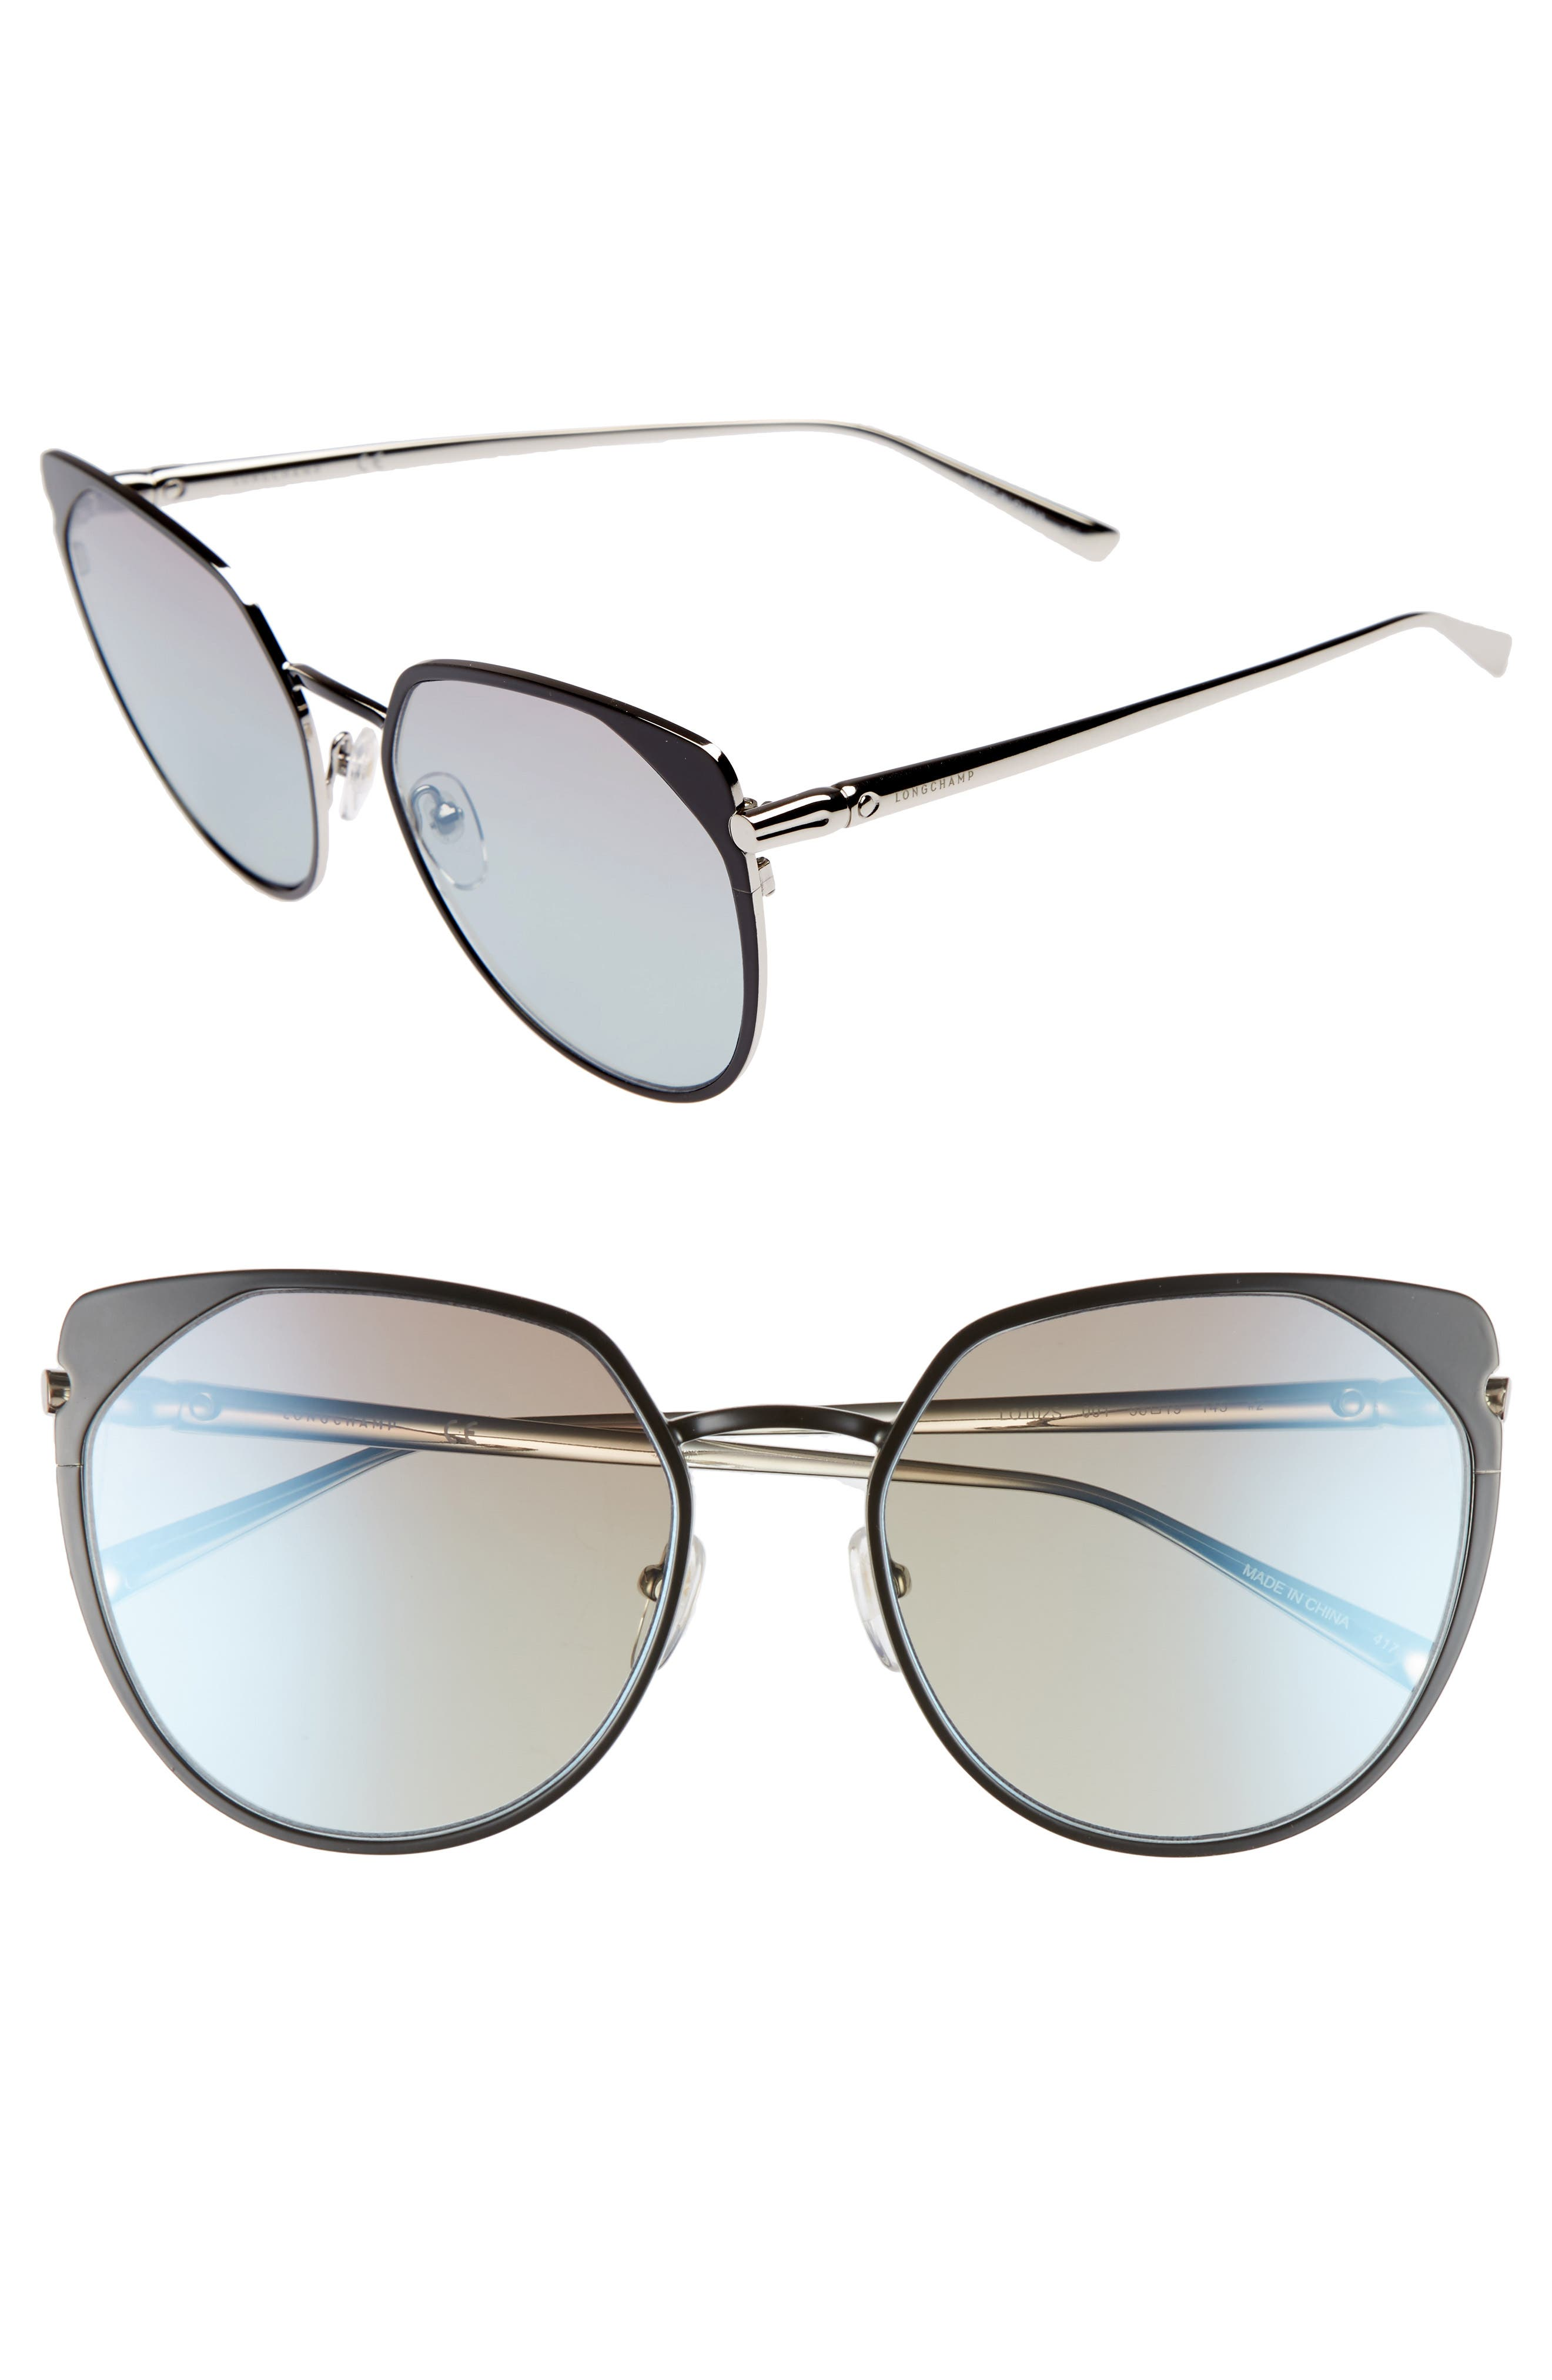 58mm Rounded Cat Eye Sunglasses,                             Main thumbnail 1, color,                             001